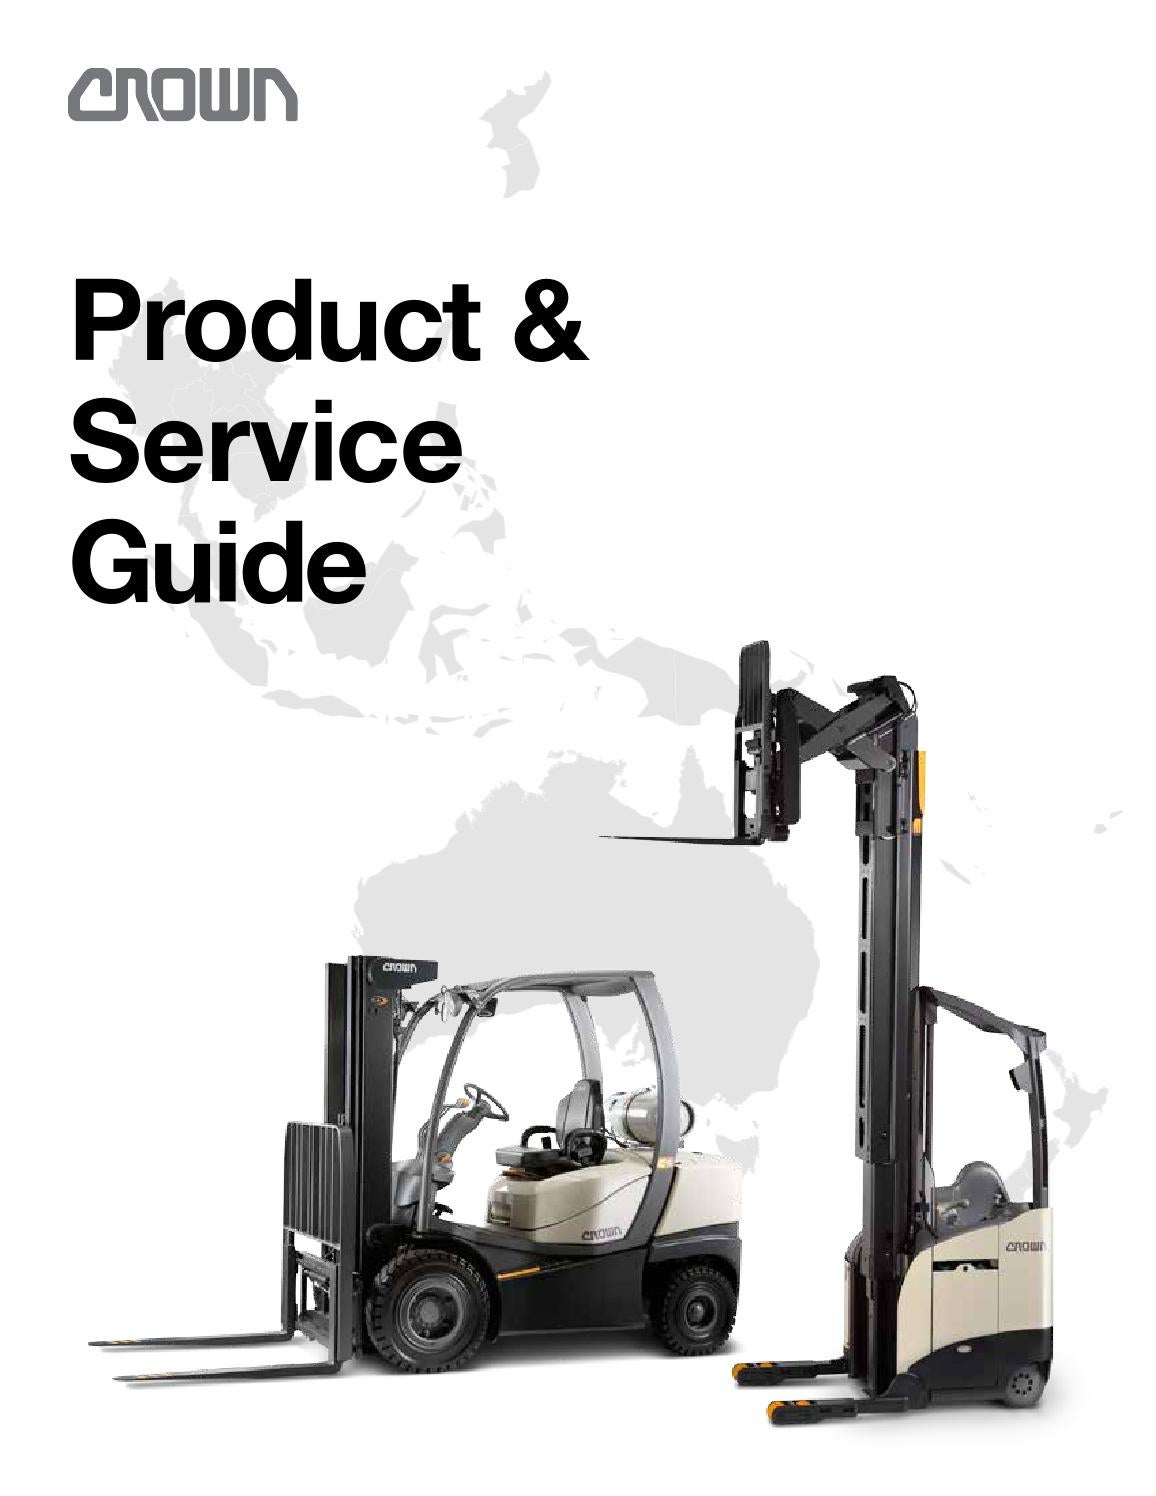 Crown Equipment product catalogue by Crown Lift Trucks Pty Ltd - issuu